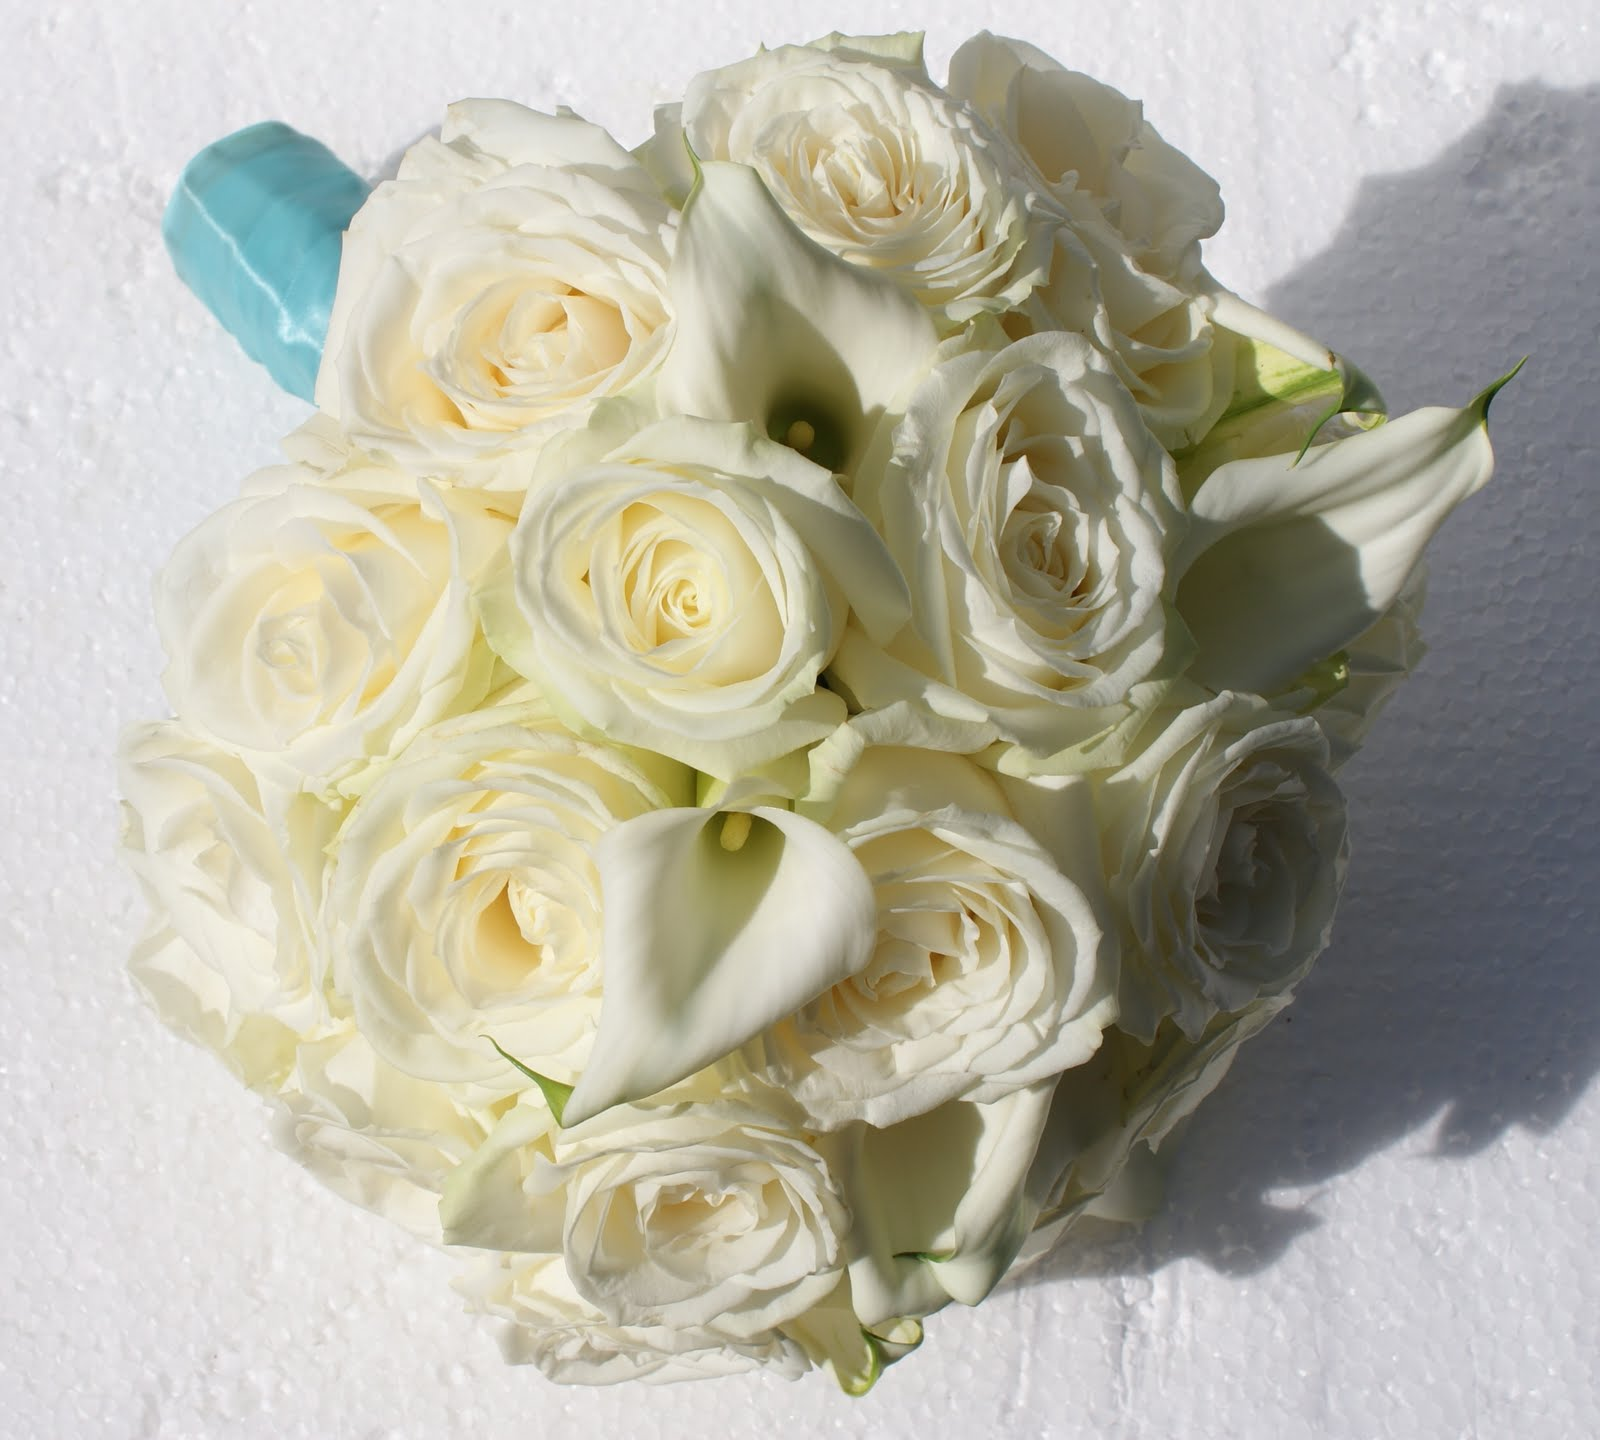 Wedding Flowers Keighley: The Flower Company: Keighley And Carl